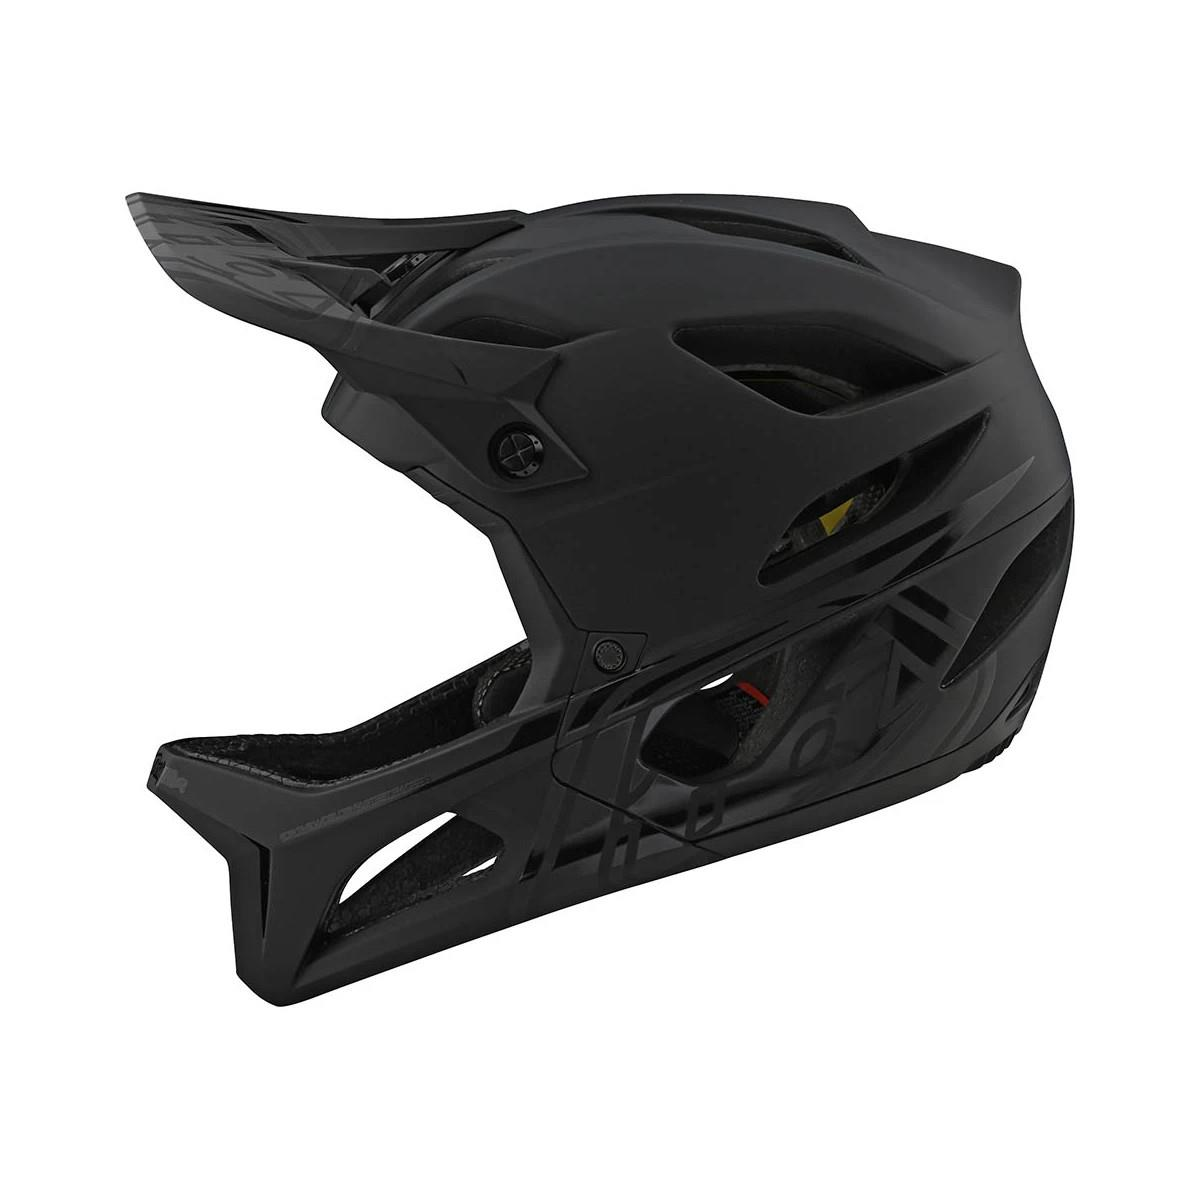 Full Face Helmet Stage MIPS Stealth Midnight Black Size XS/S (54-56cm)